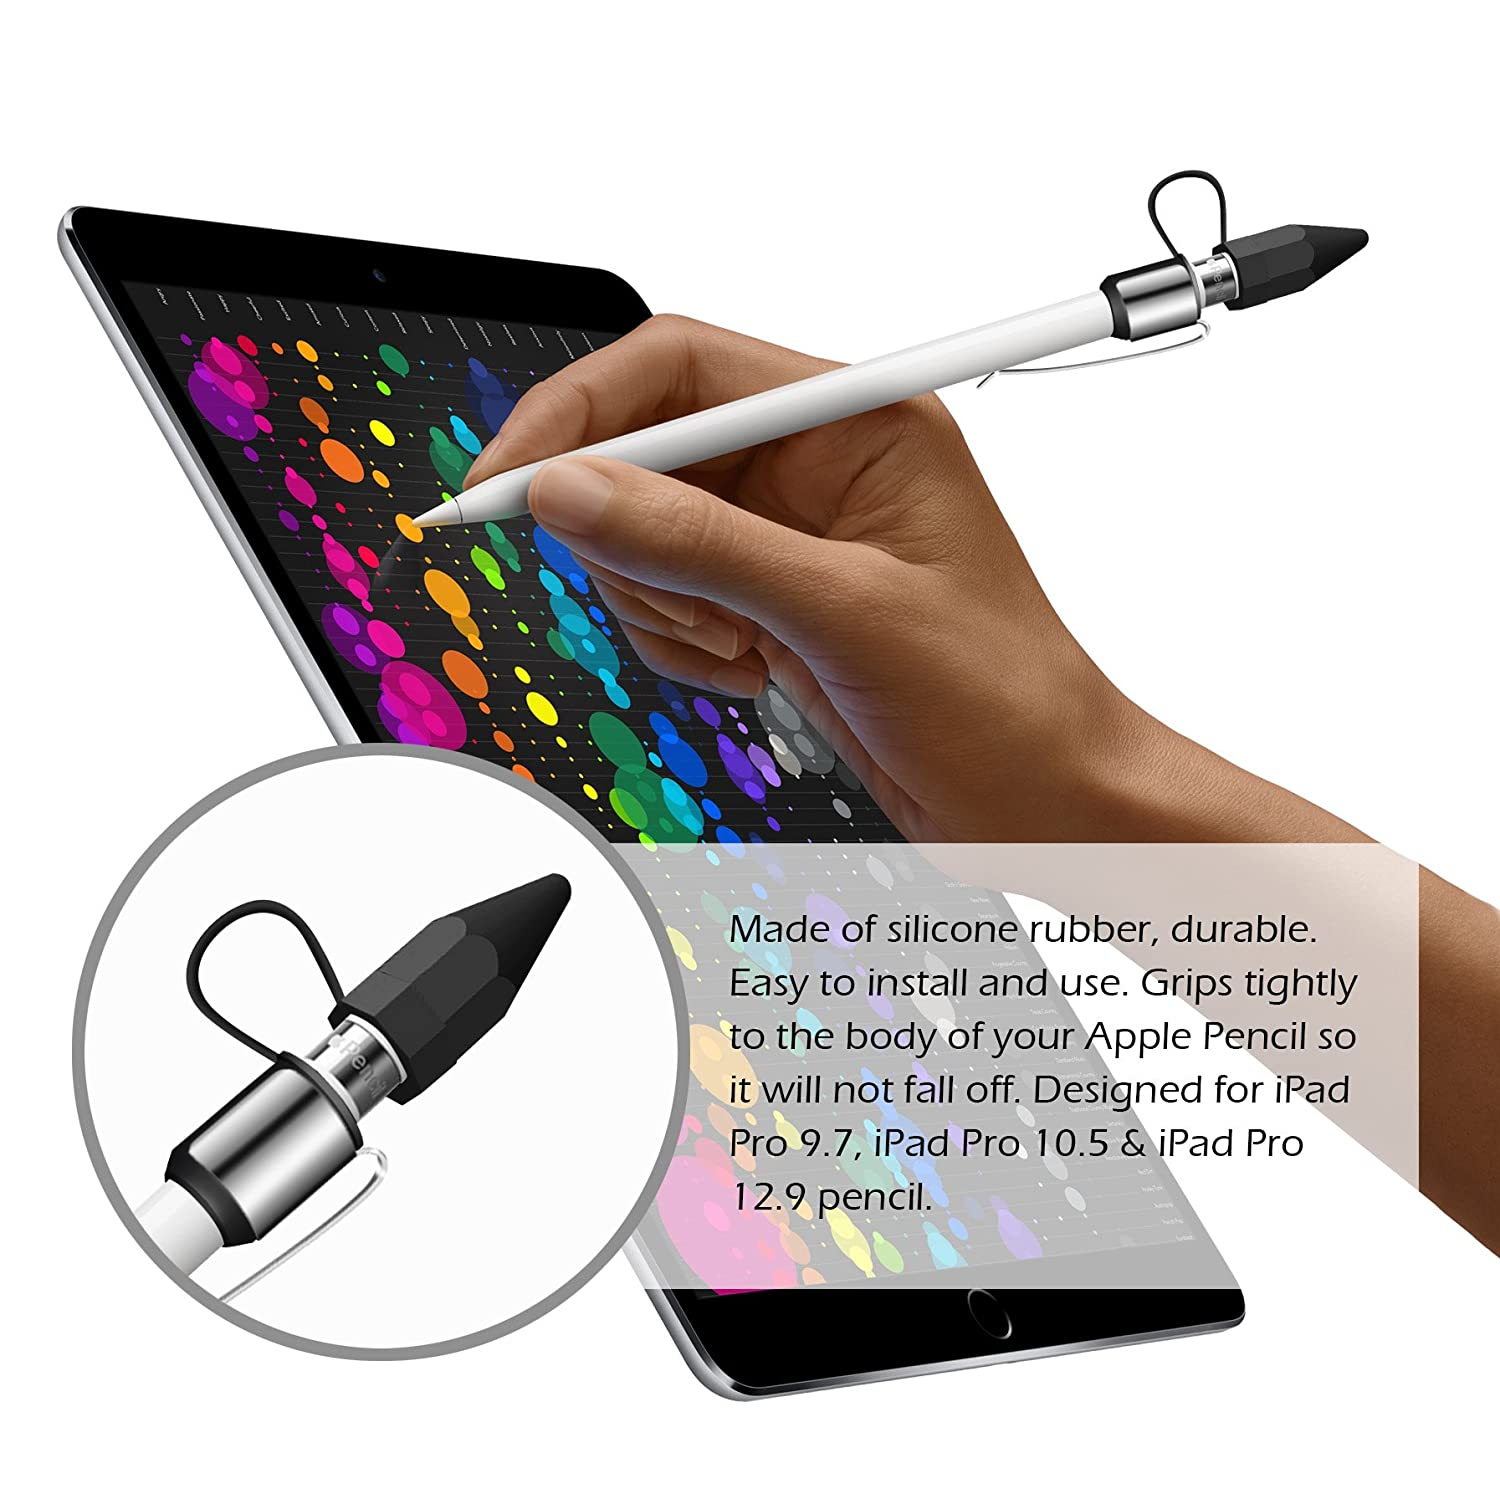 Bepack Apple Pencil Cap 4-pieces Stylus Pen Protective case Holder with Hook//Nib Cover//Lightning Cable Adapter Tether for iPad Pro Pencil